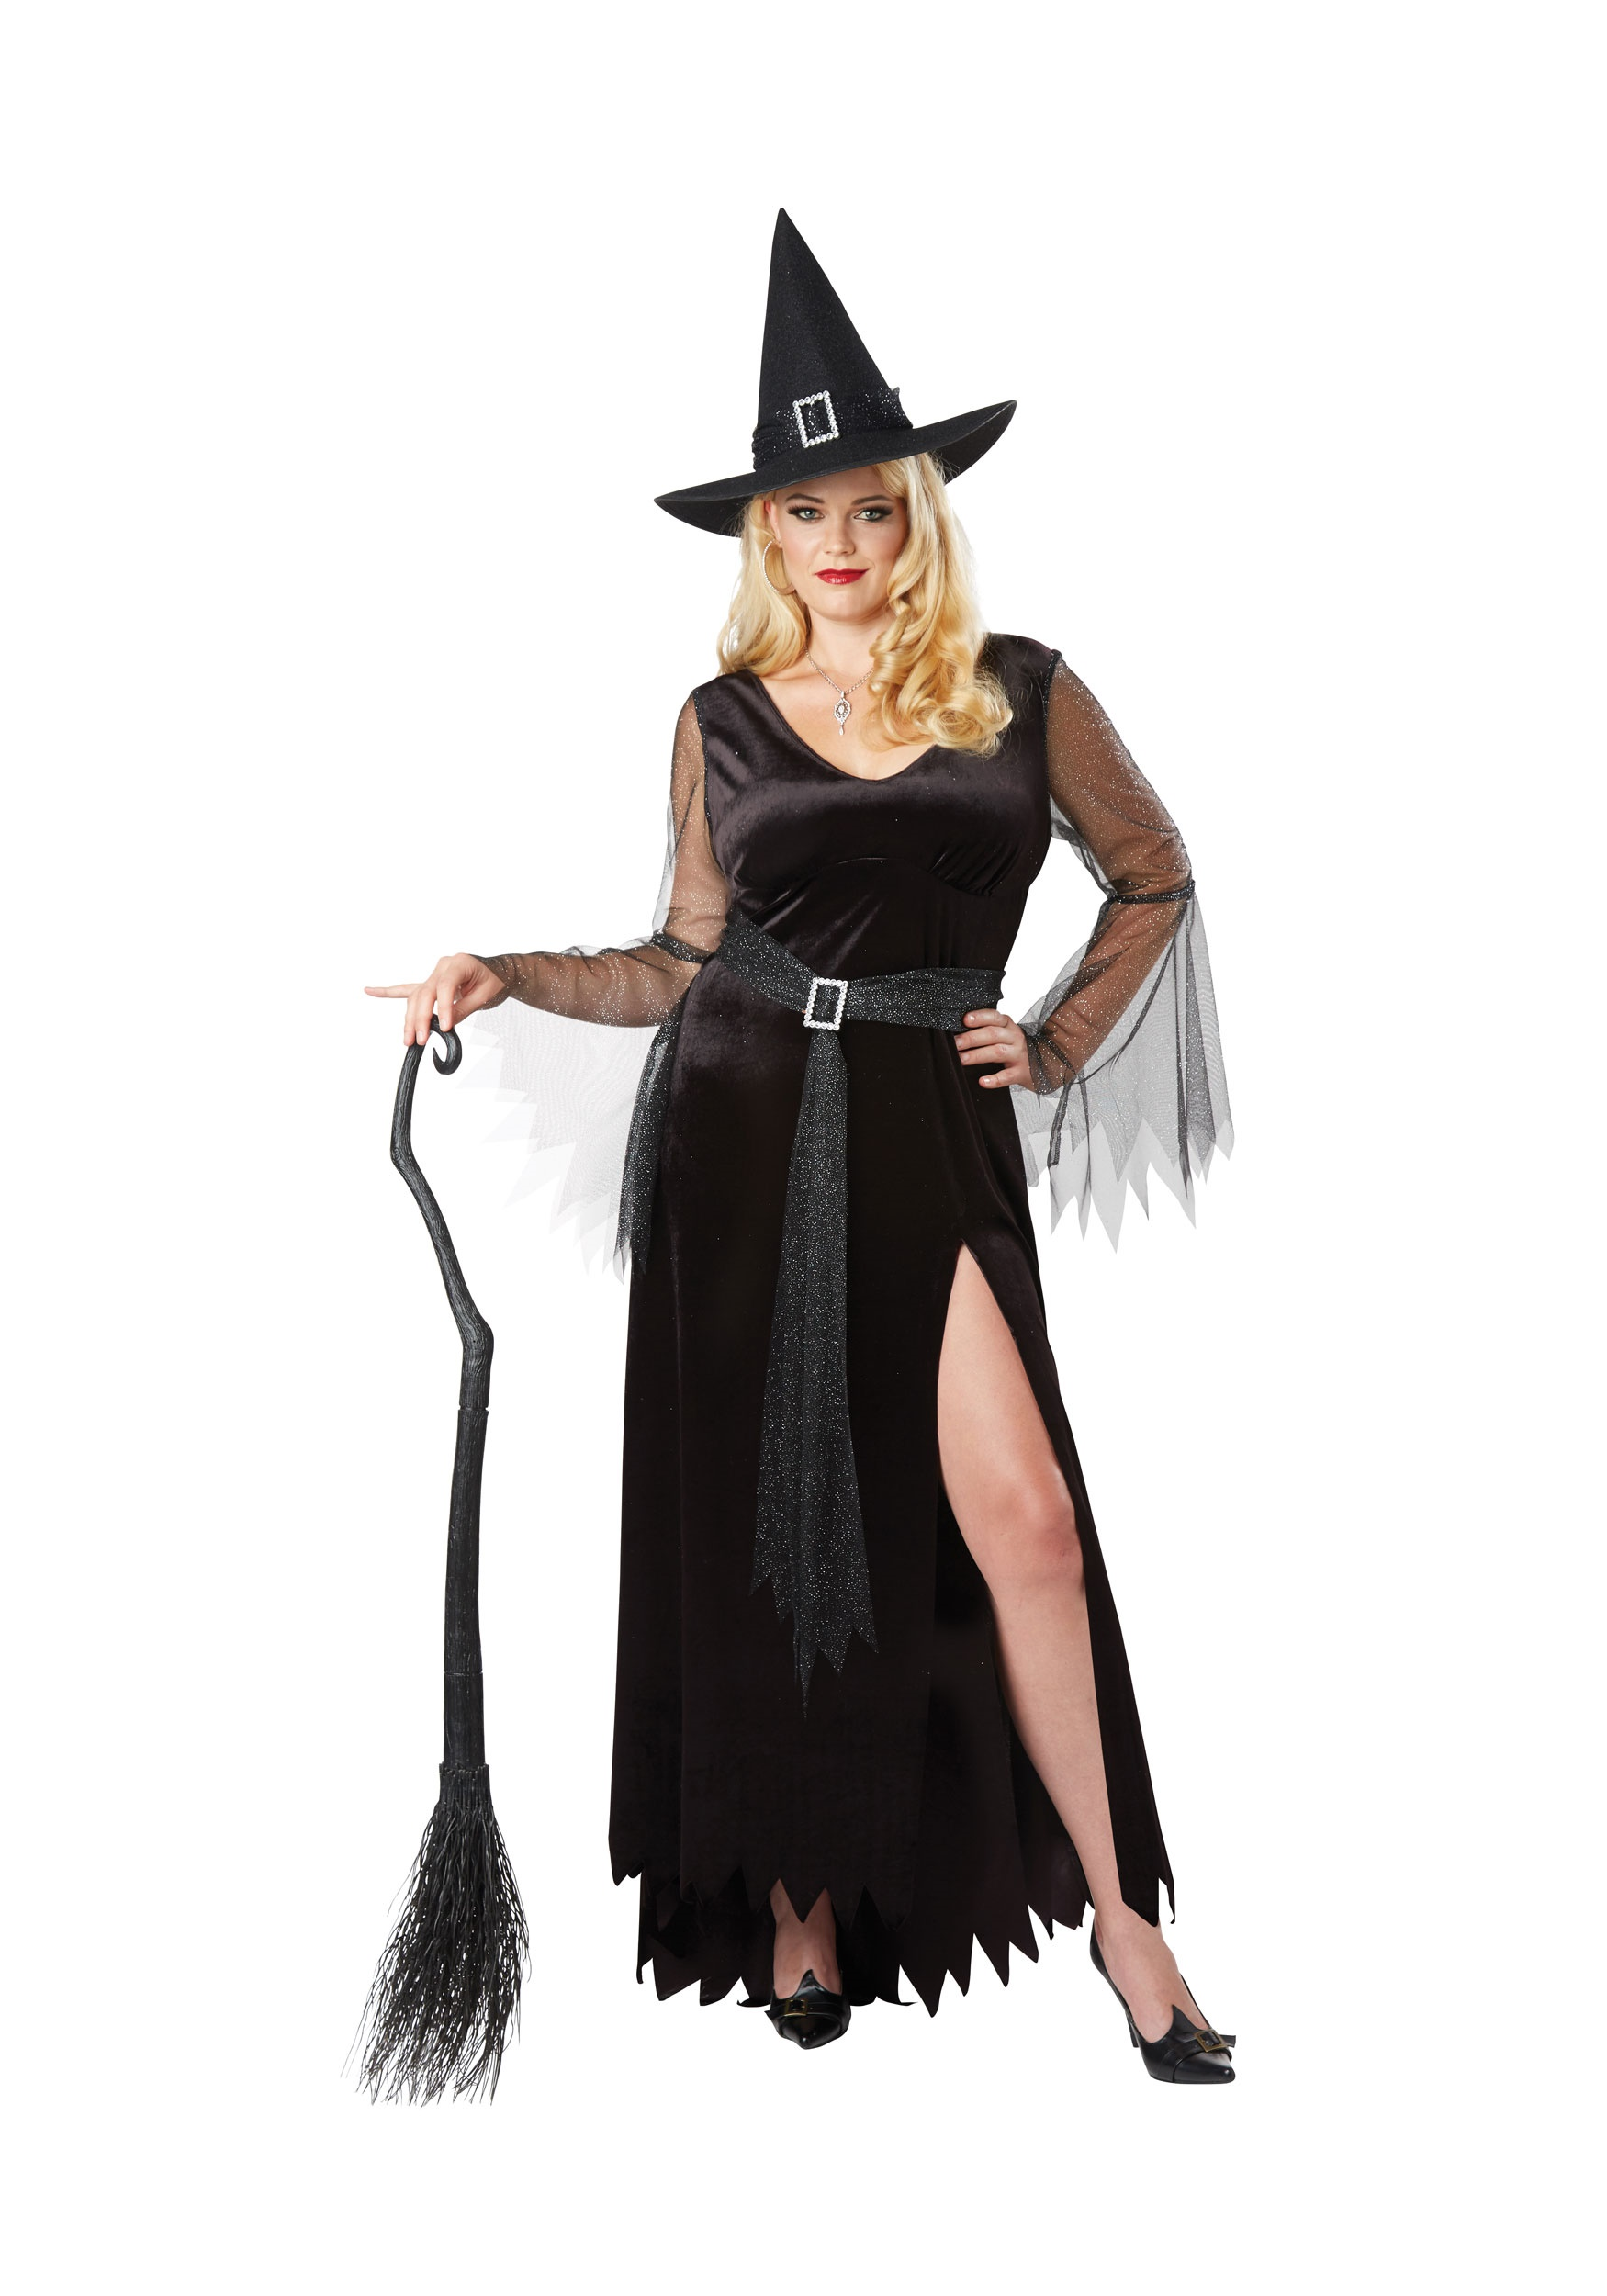 Voodoo Witch Plus Size Costume for Women 1X 2X |Plus Size Halloween Costumes Witch